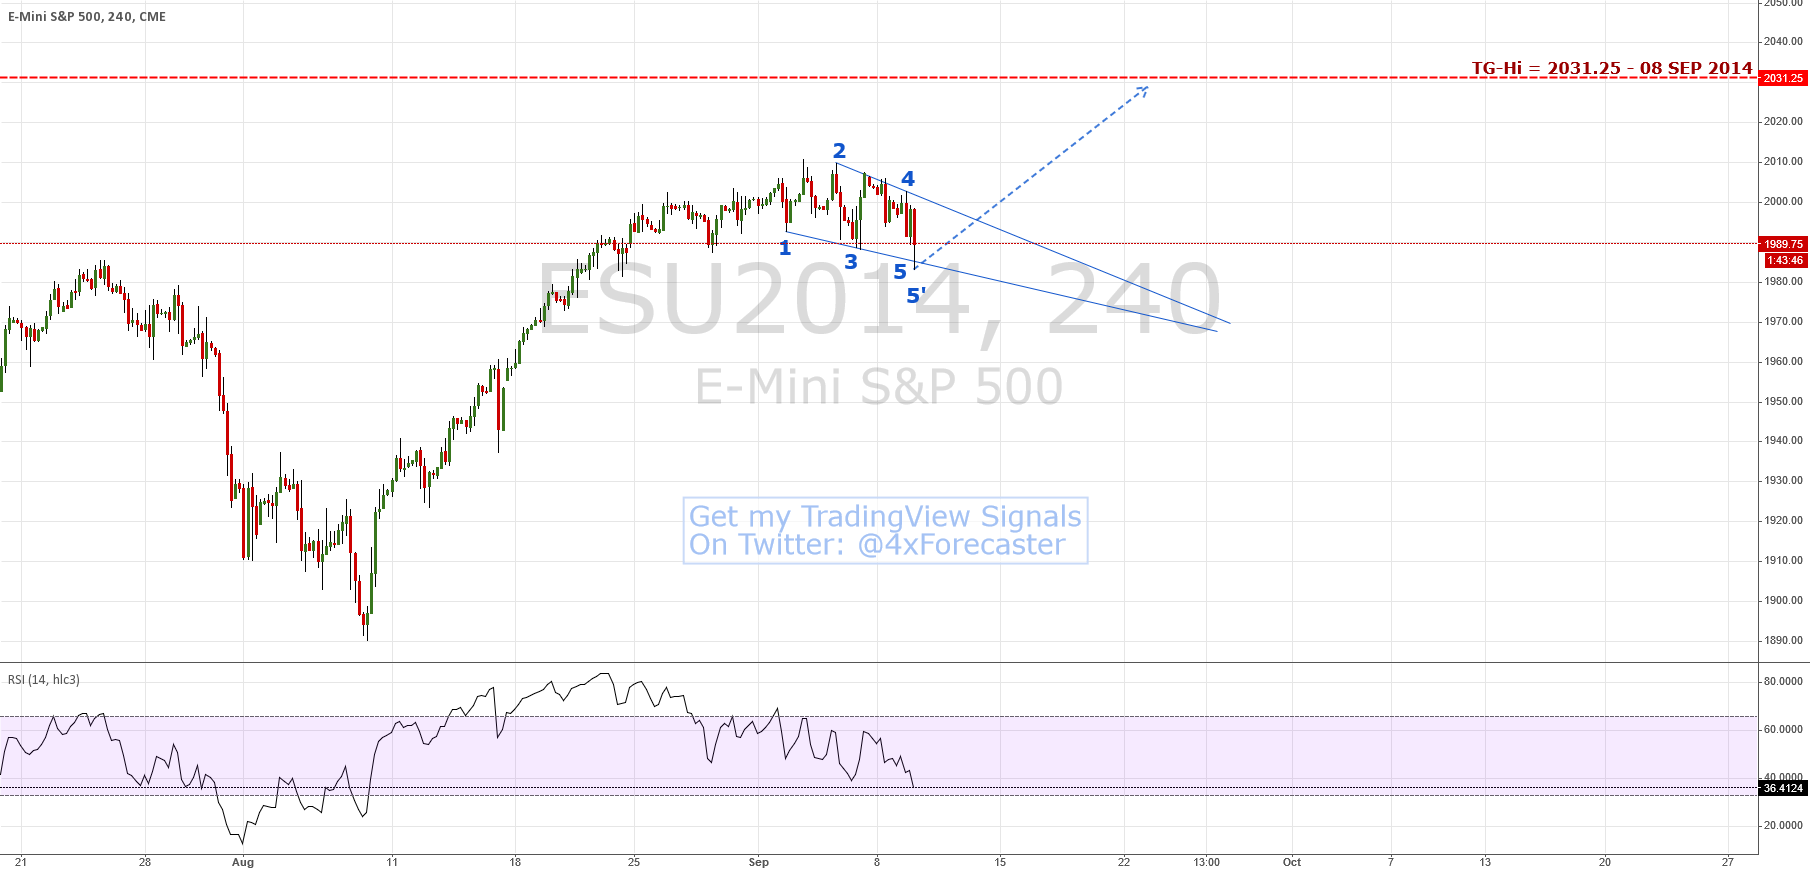 #ES Remains Bullish Per Model; 2031.25 Target Intact| #SP500